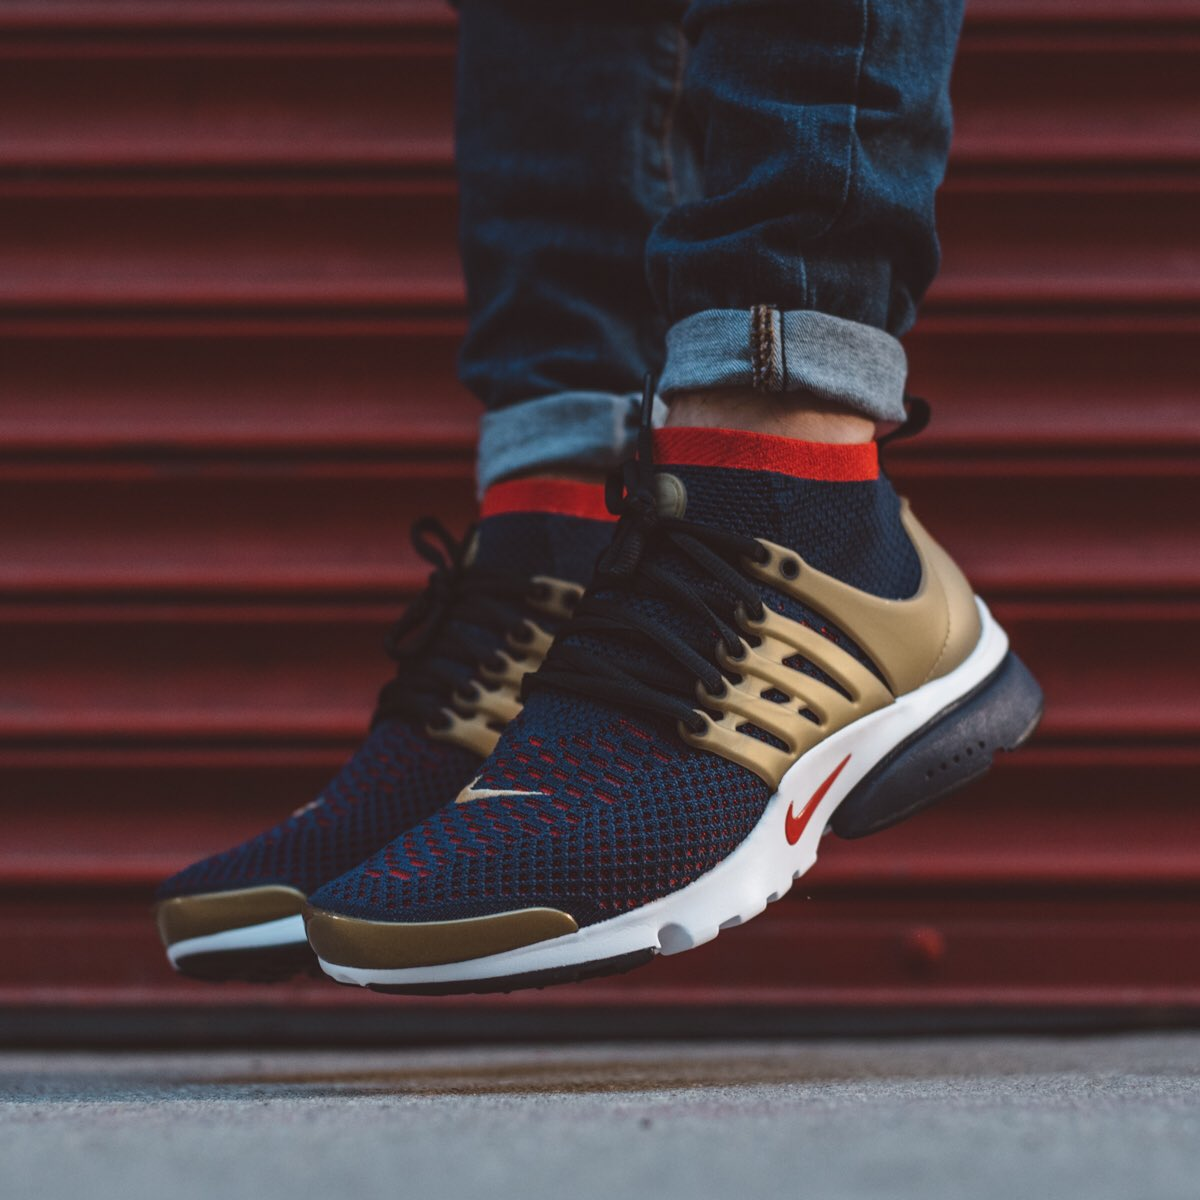 the latest 6315f 698bd Here's An On-Feet Look At The Nike Air Presto Ultra Flyknit ...